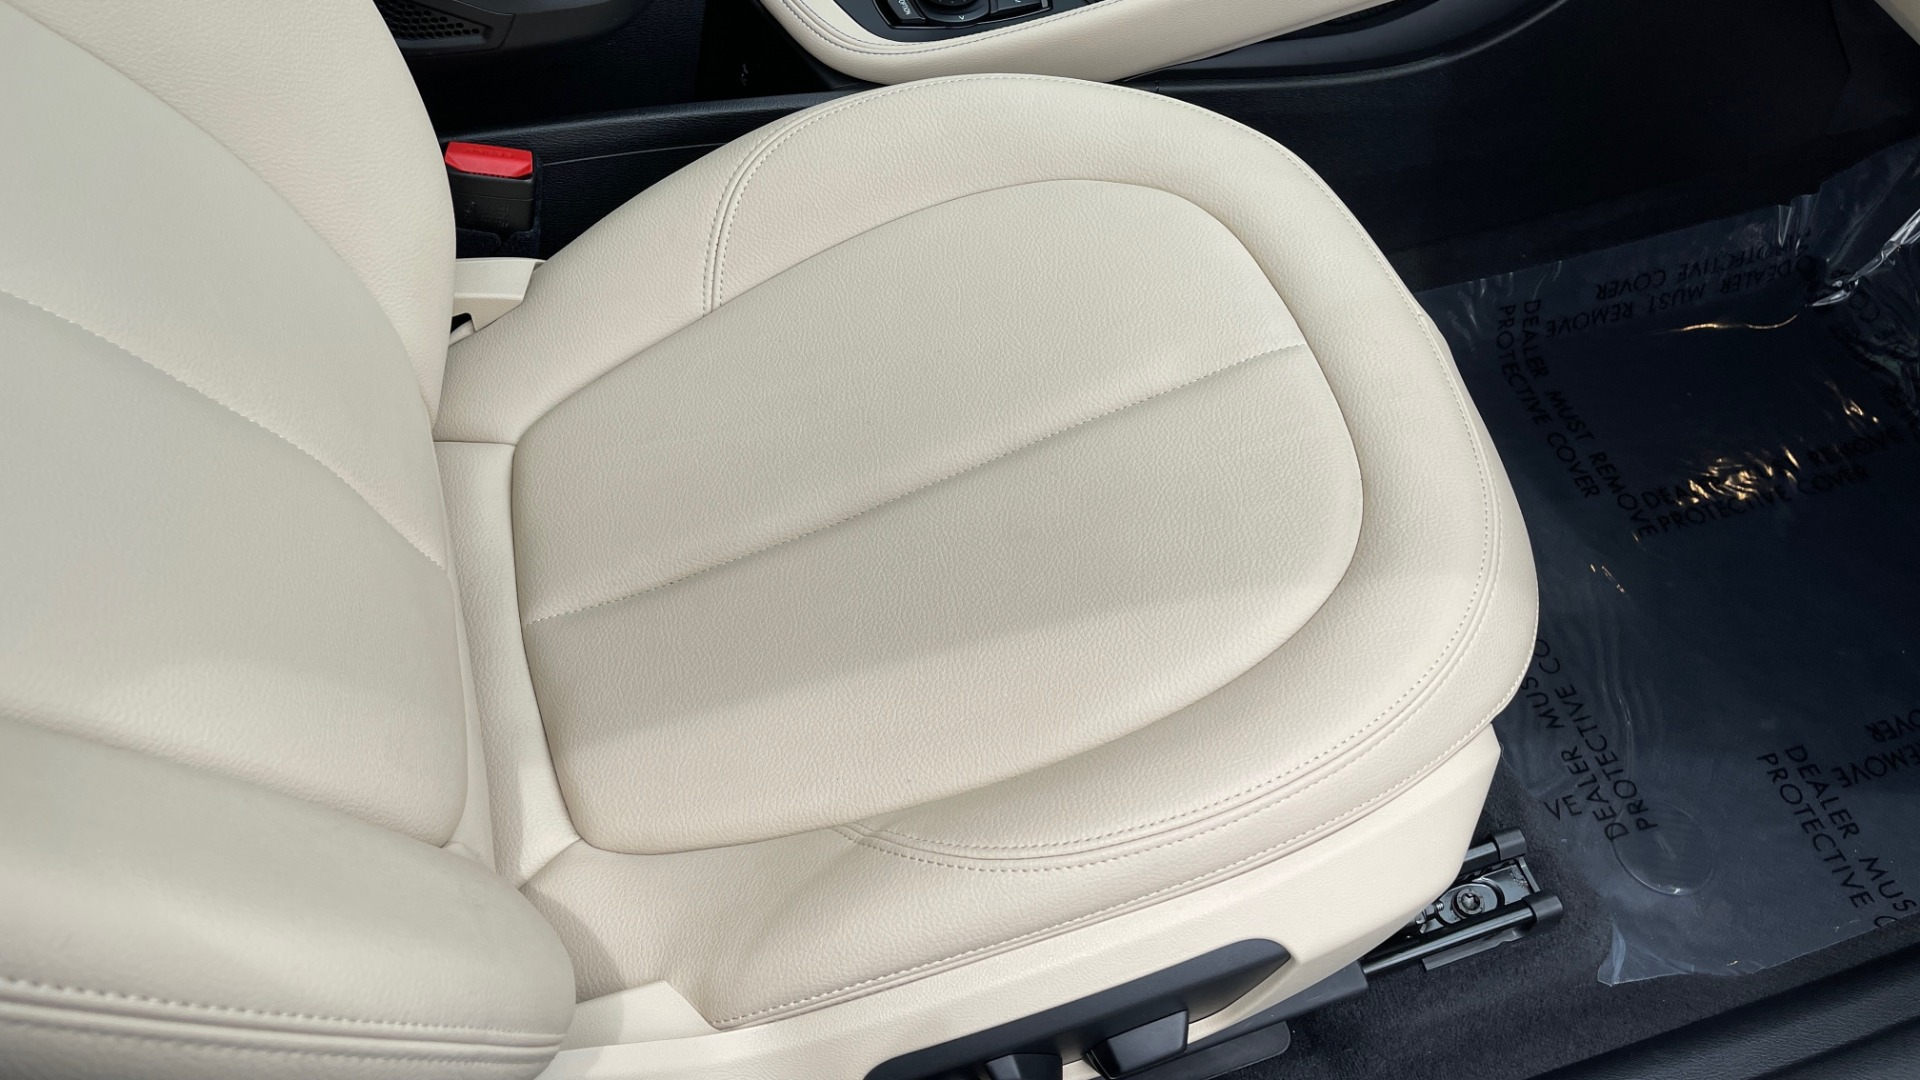 Used 2018 BMW X1 XDRIVE28I / CONV PKG / PANO-ROOF / HTD STS / PARK ASST / REARVIEW for sale $30,995 at Formula Imports in Charlotte NC 28227 84